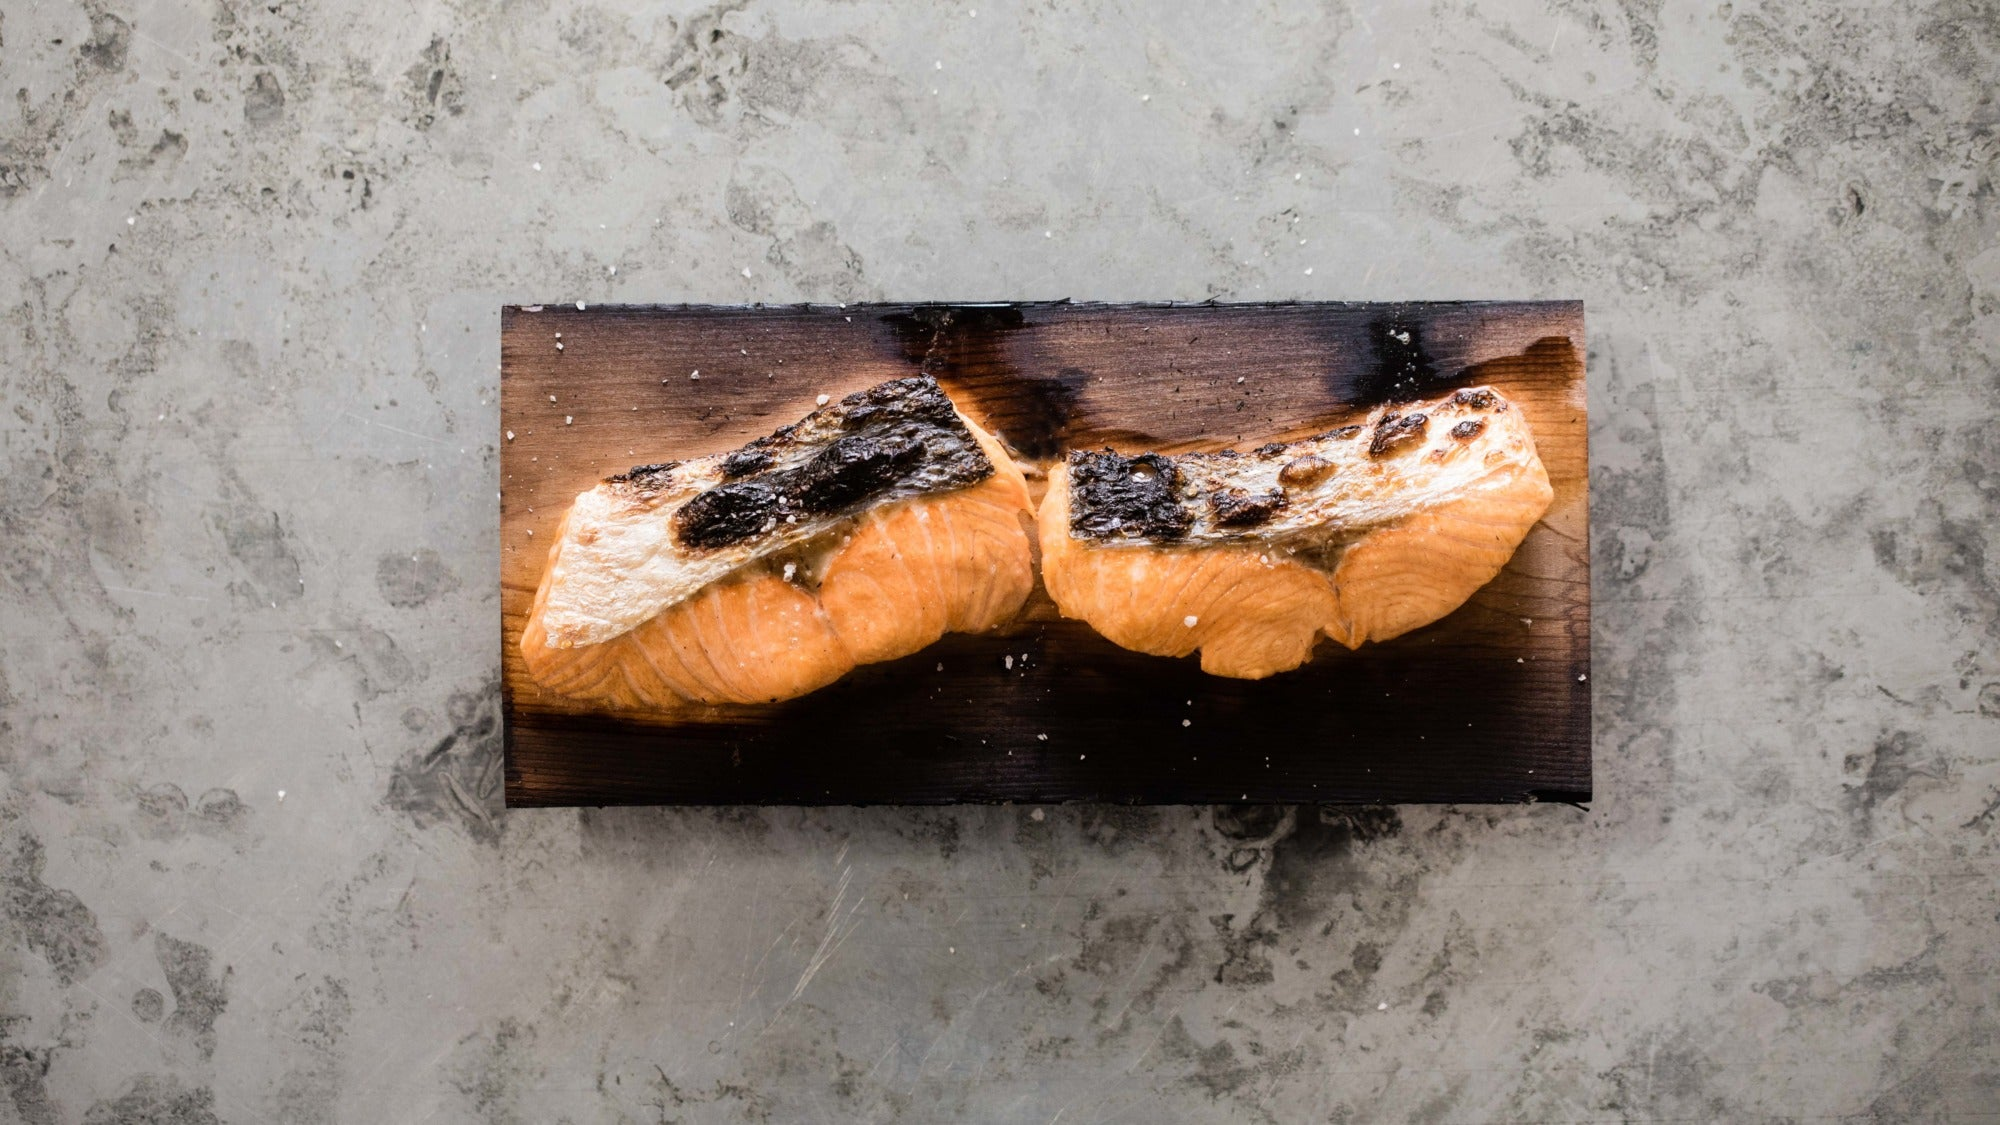 Plank Cooked Salmon